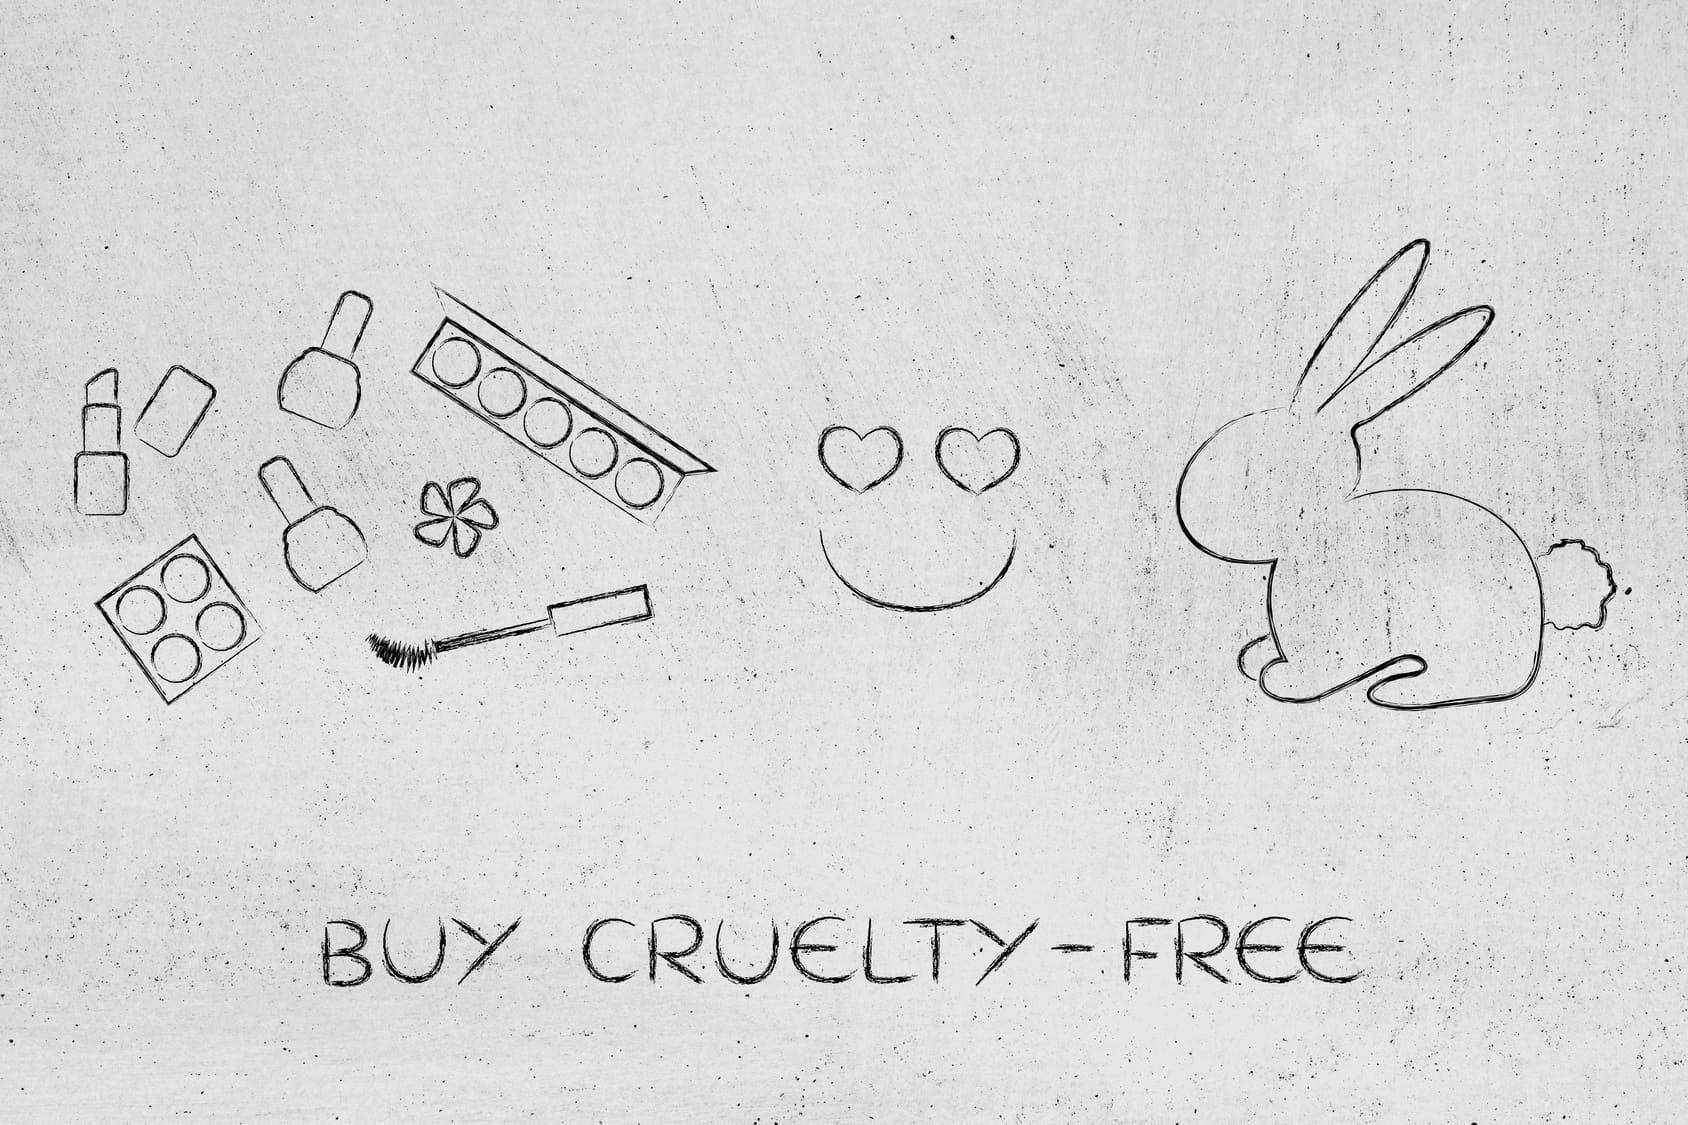 A New Vegan's Guide to Cruelty-Free Products